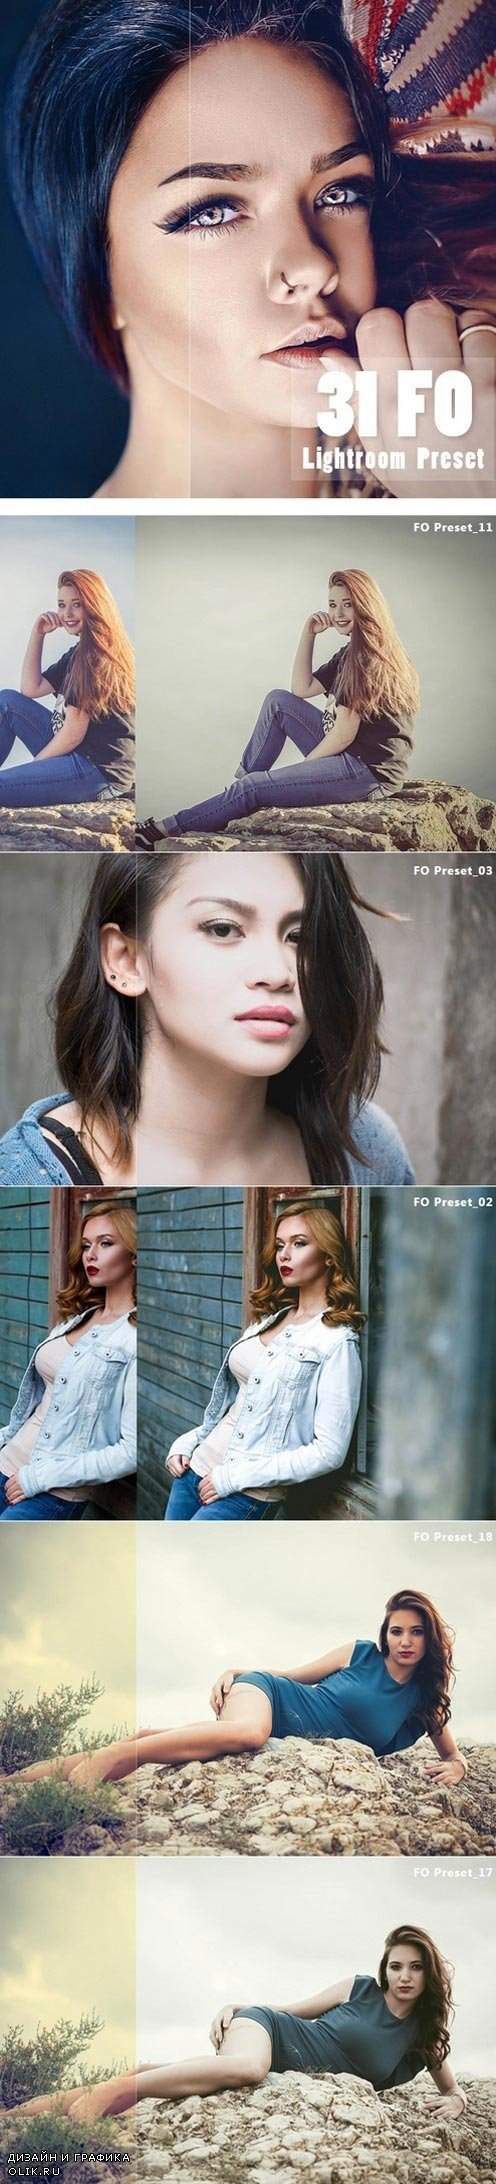 31 Fo Lightroom Presets 19433906